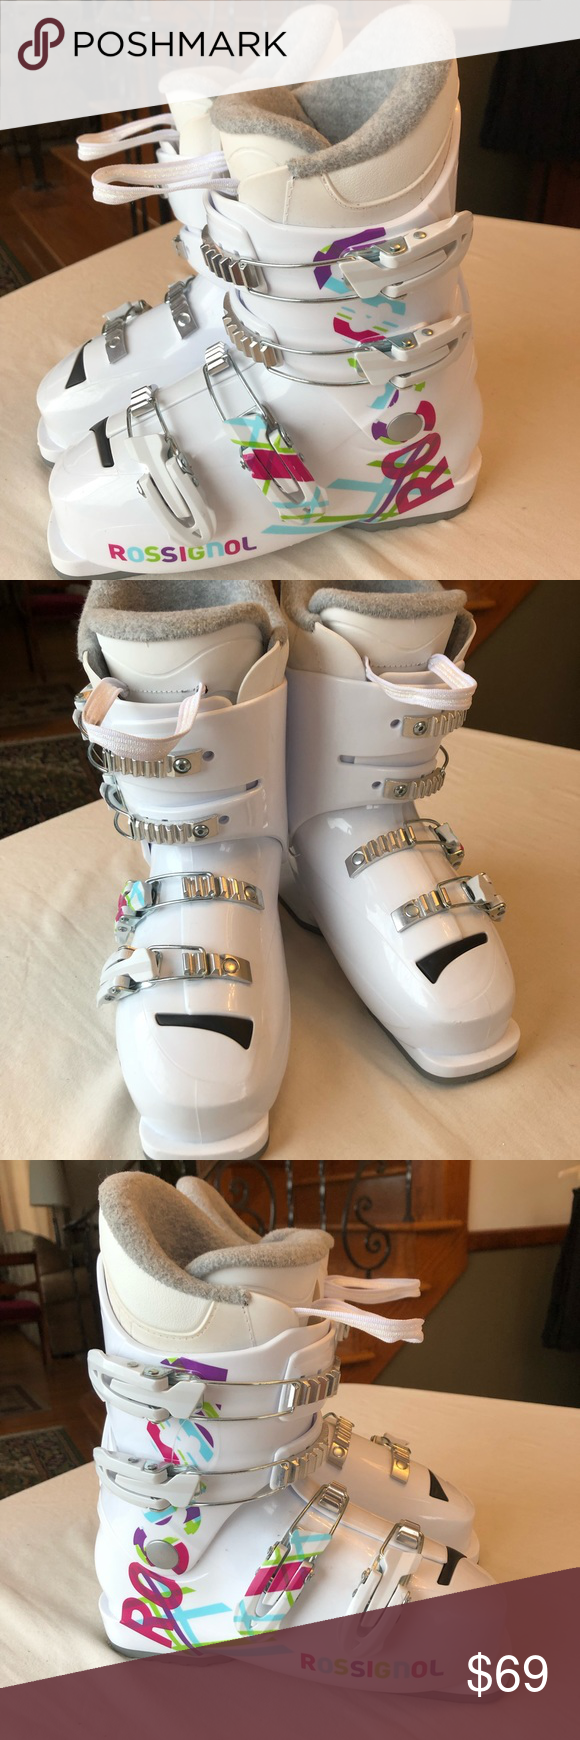 Rossignol Girl S Youth Ski Boots Size 23 5 White With Pink And Blue Decoration Equivilant To Size Youth 4 5 See Chart Worn Ski Boot Sizing Ski Boots Boots